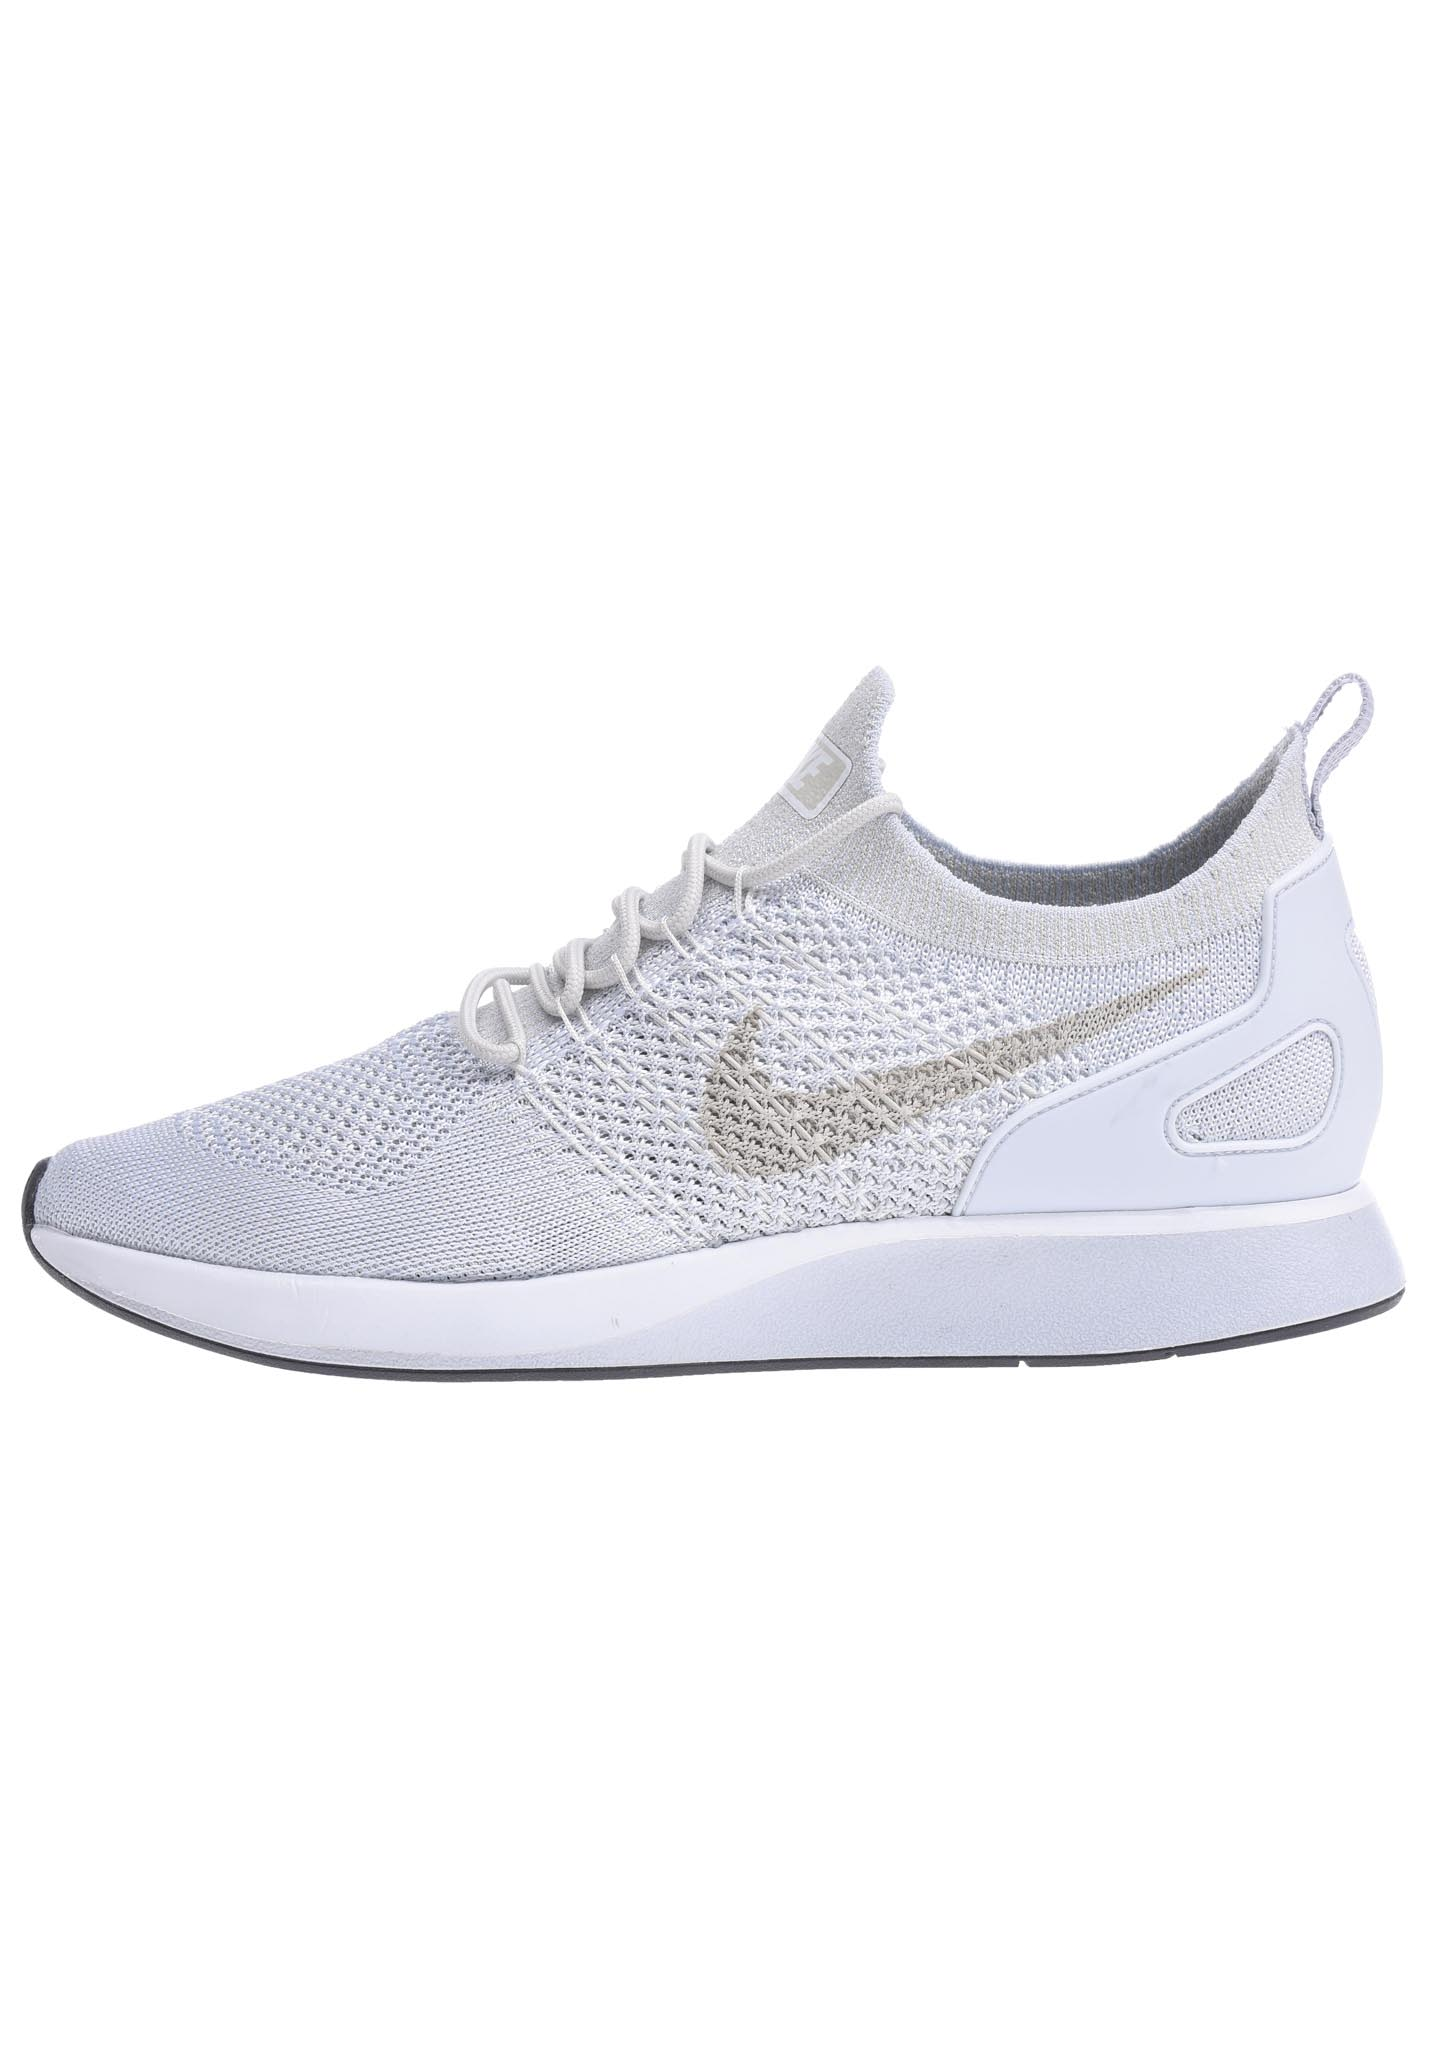 best service 3a113 45cd3 NIKE SPORTSWEAR Air Zoom Mariah Flyknit Racer - Baskets pour Homme - Gris -  Planet Sports